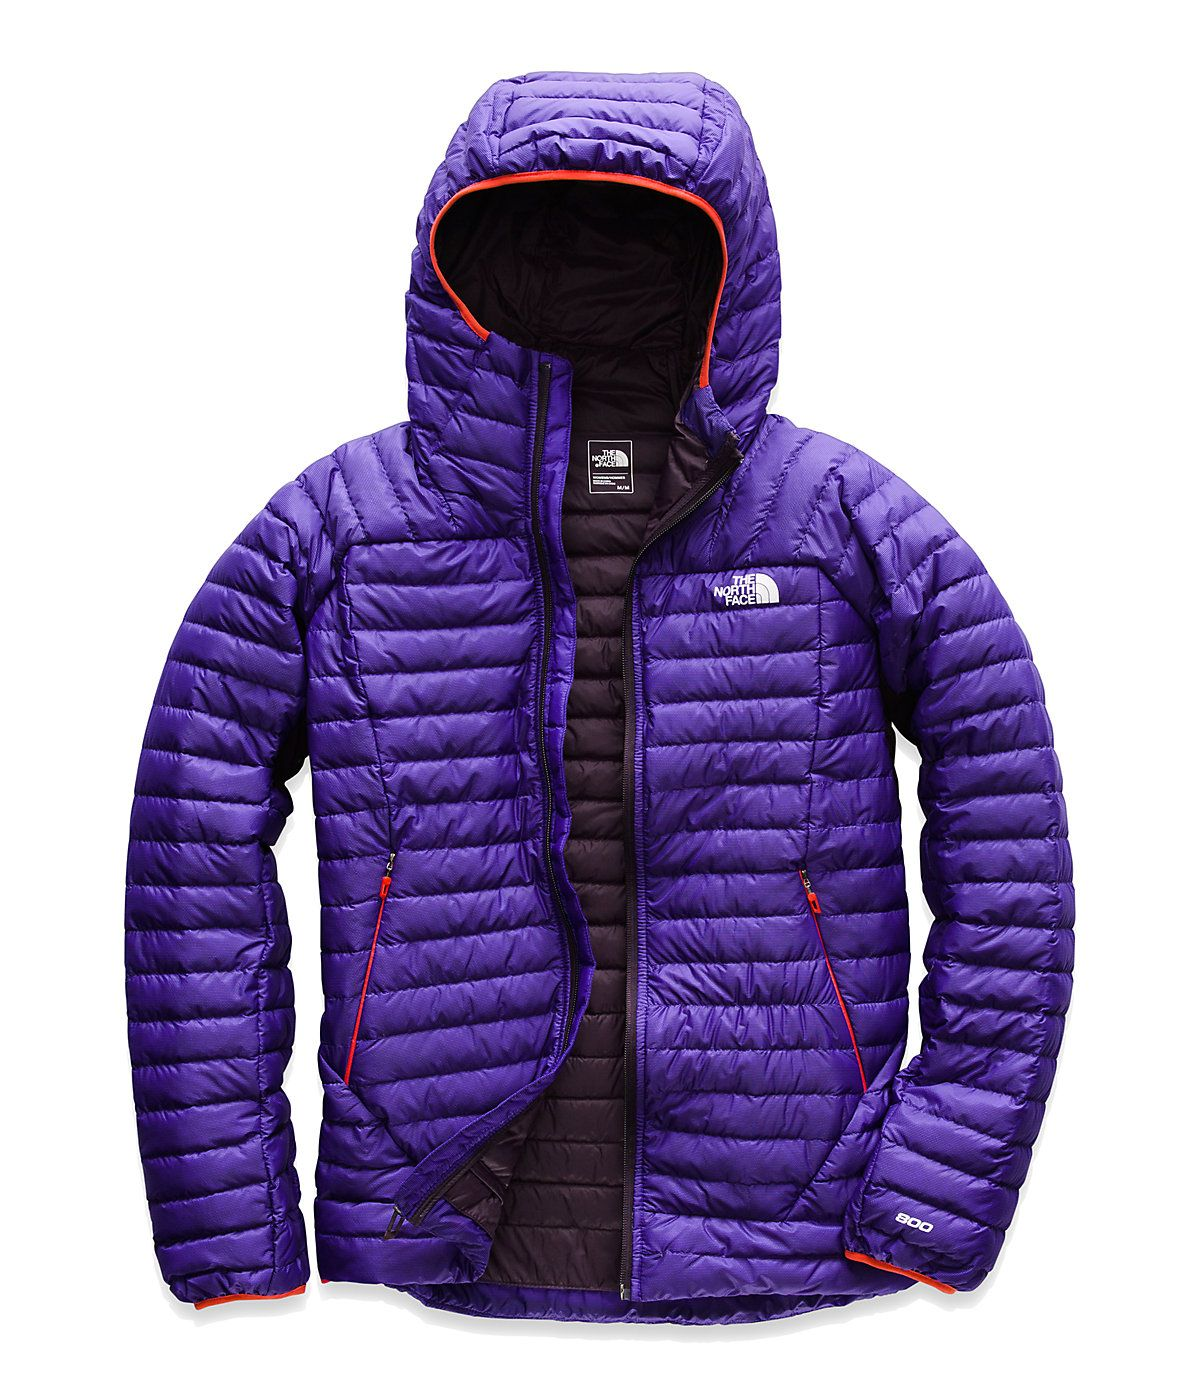 370ffd828 Women's Impendor Down Hybrid Hoodie in 2019   Products   Winter ...